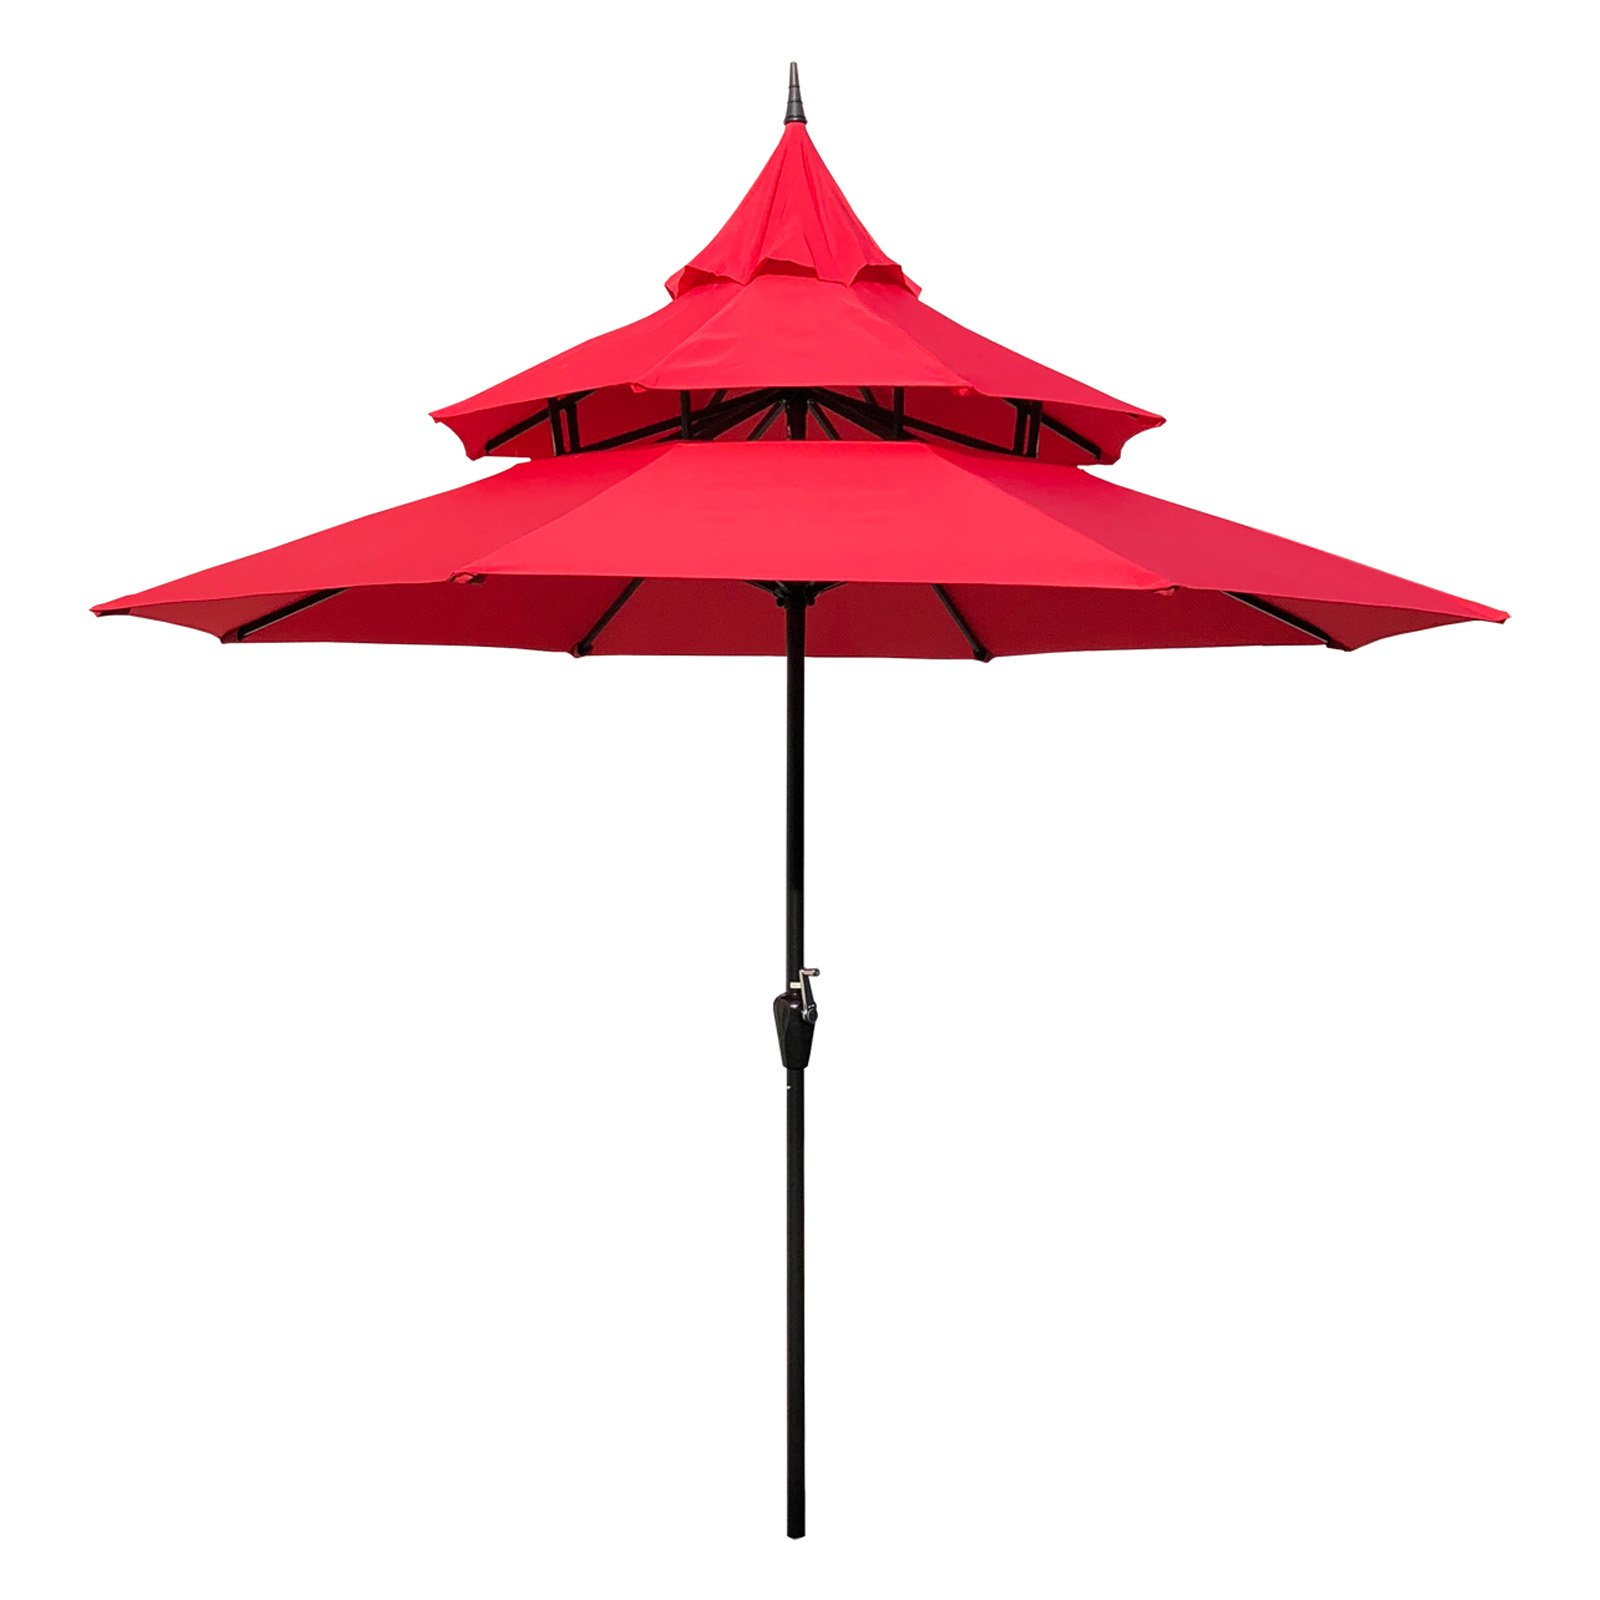 Ordinaire Steel Pagoda Patio Umbrella